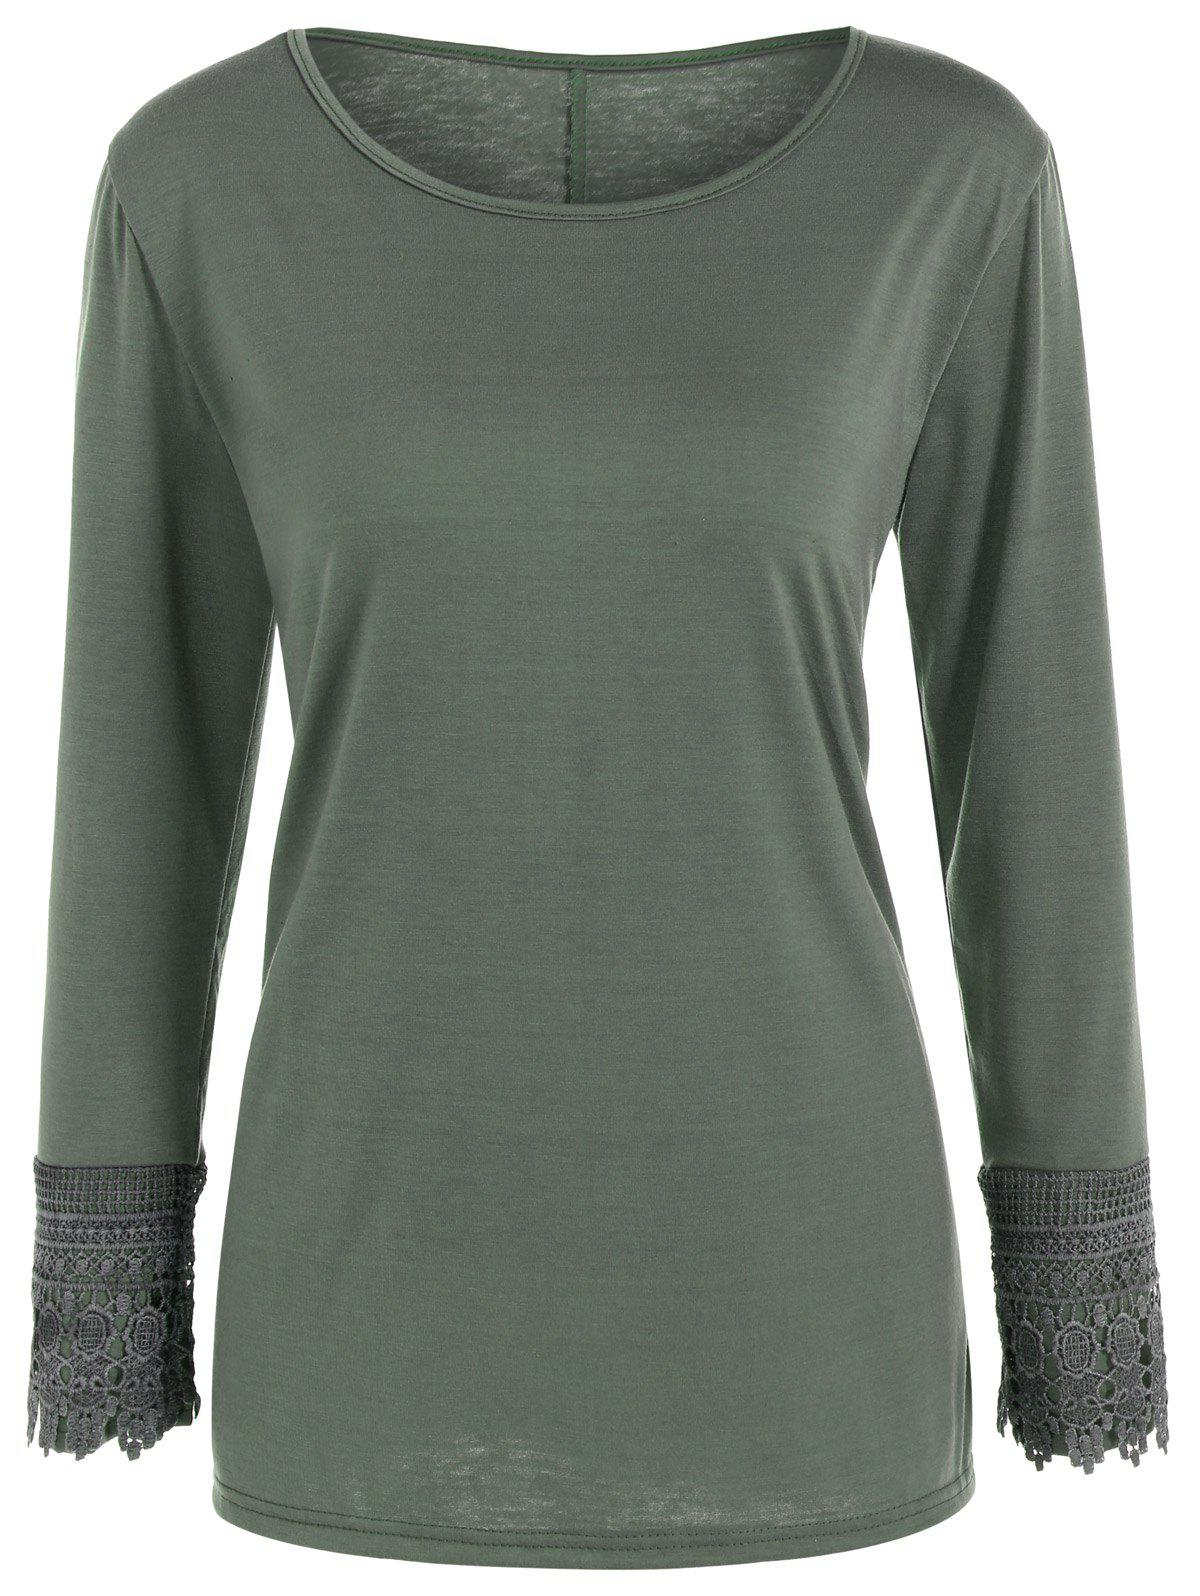 Lace Trim Long Sleeve T Shirt - ARMY GREEN L